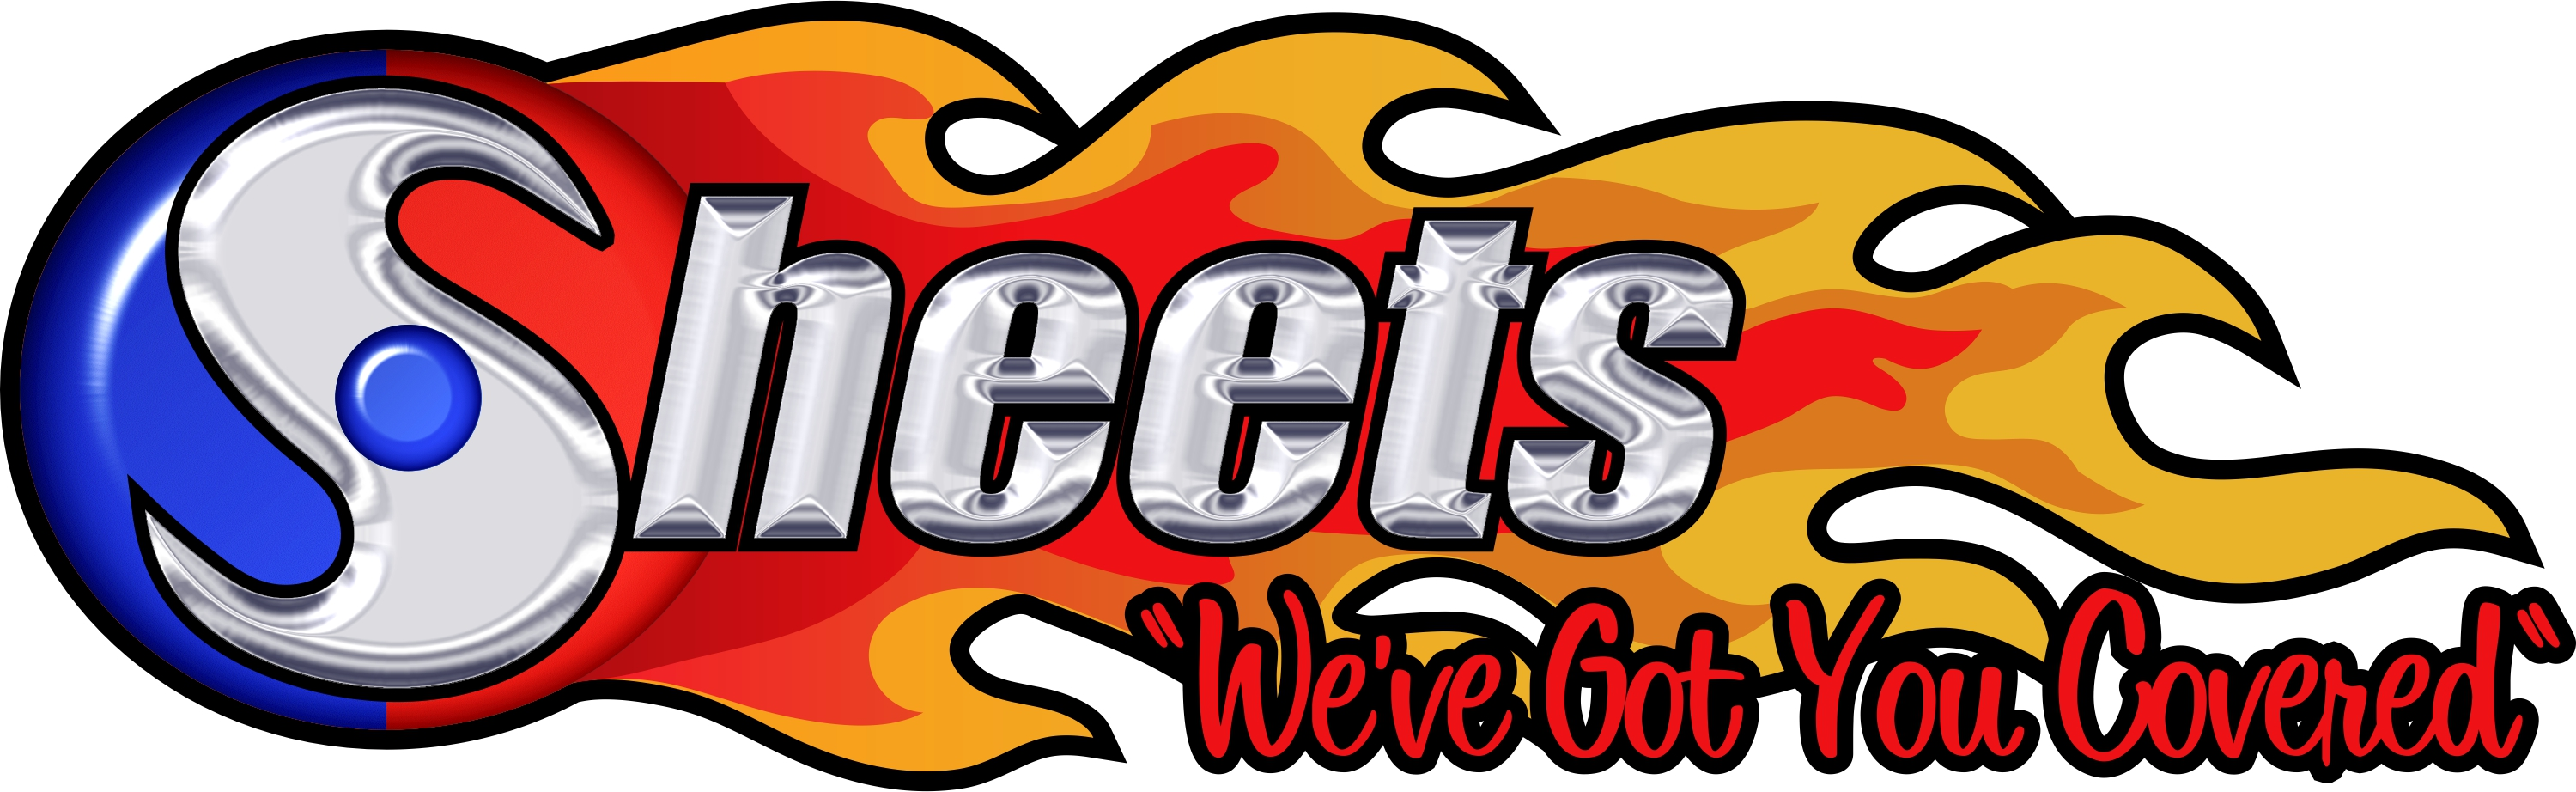 Sheets Air Conditioning, Heating & Plumbing, Inc. image 5